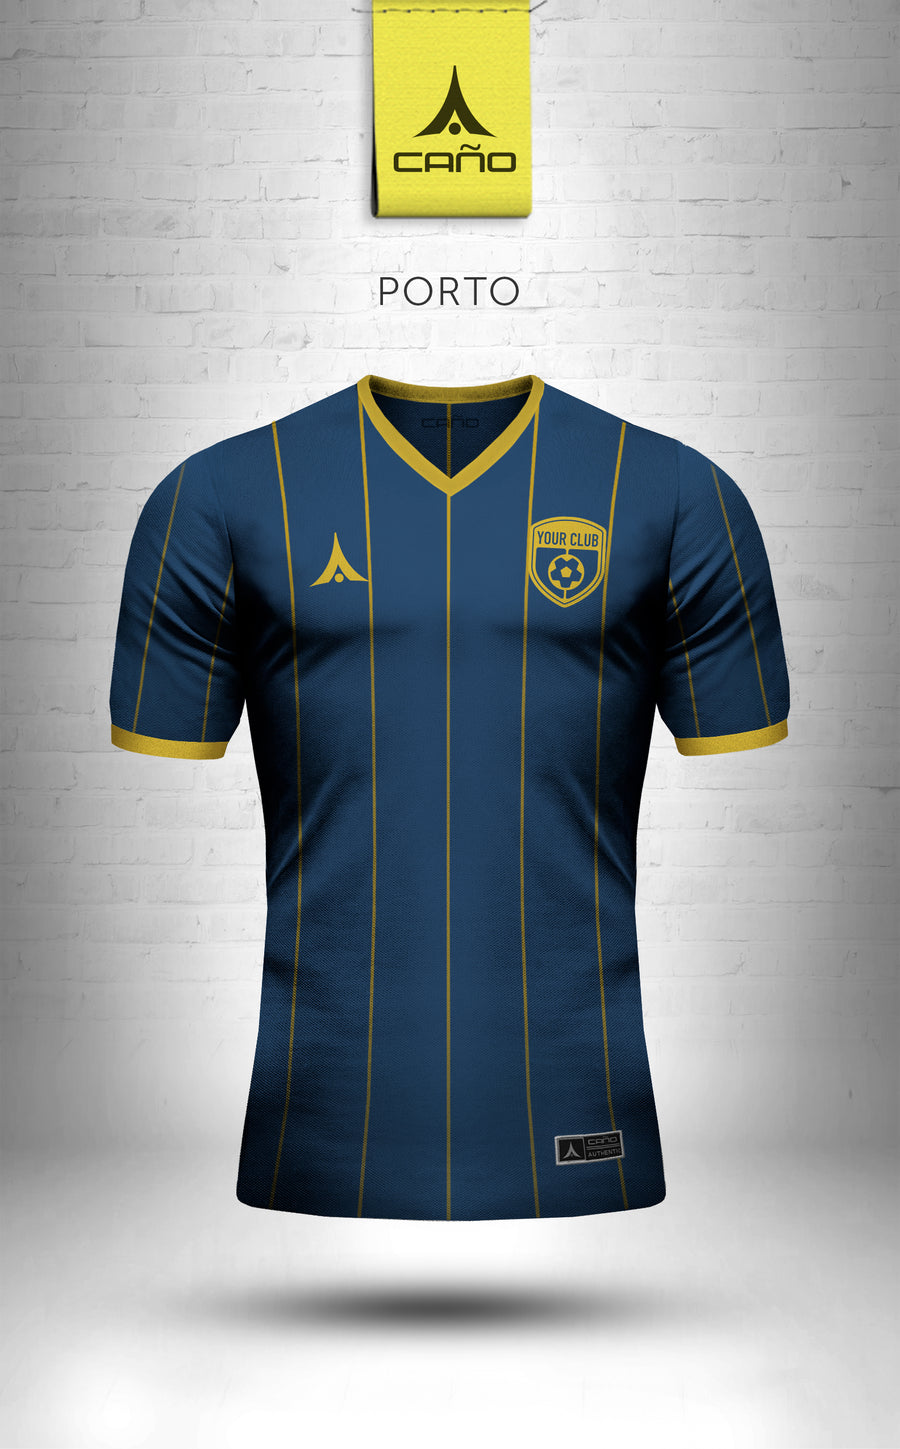 Porto in navy/gold